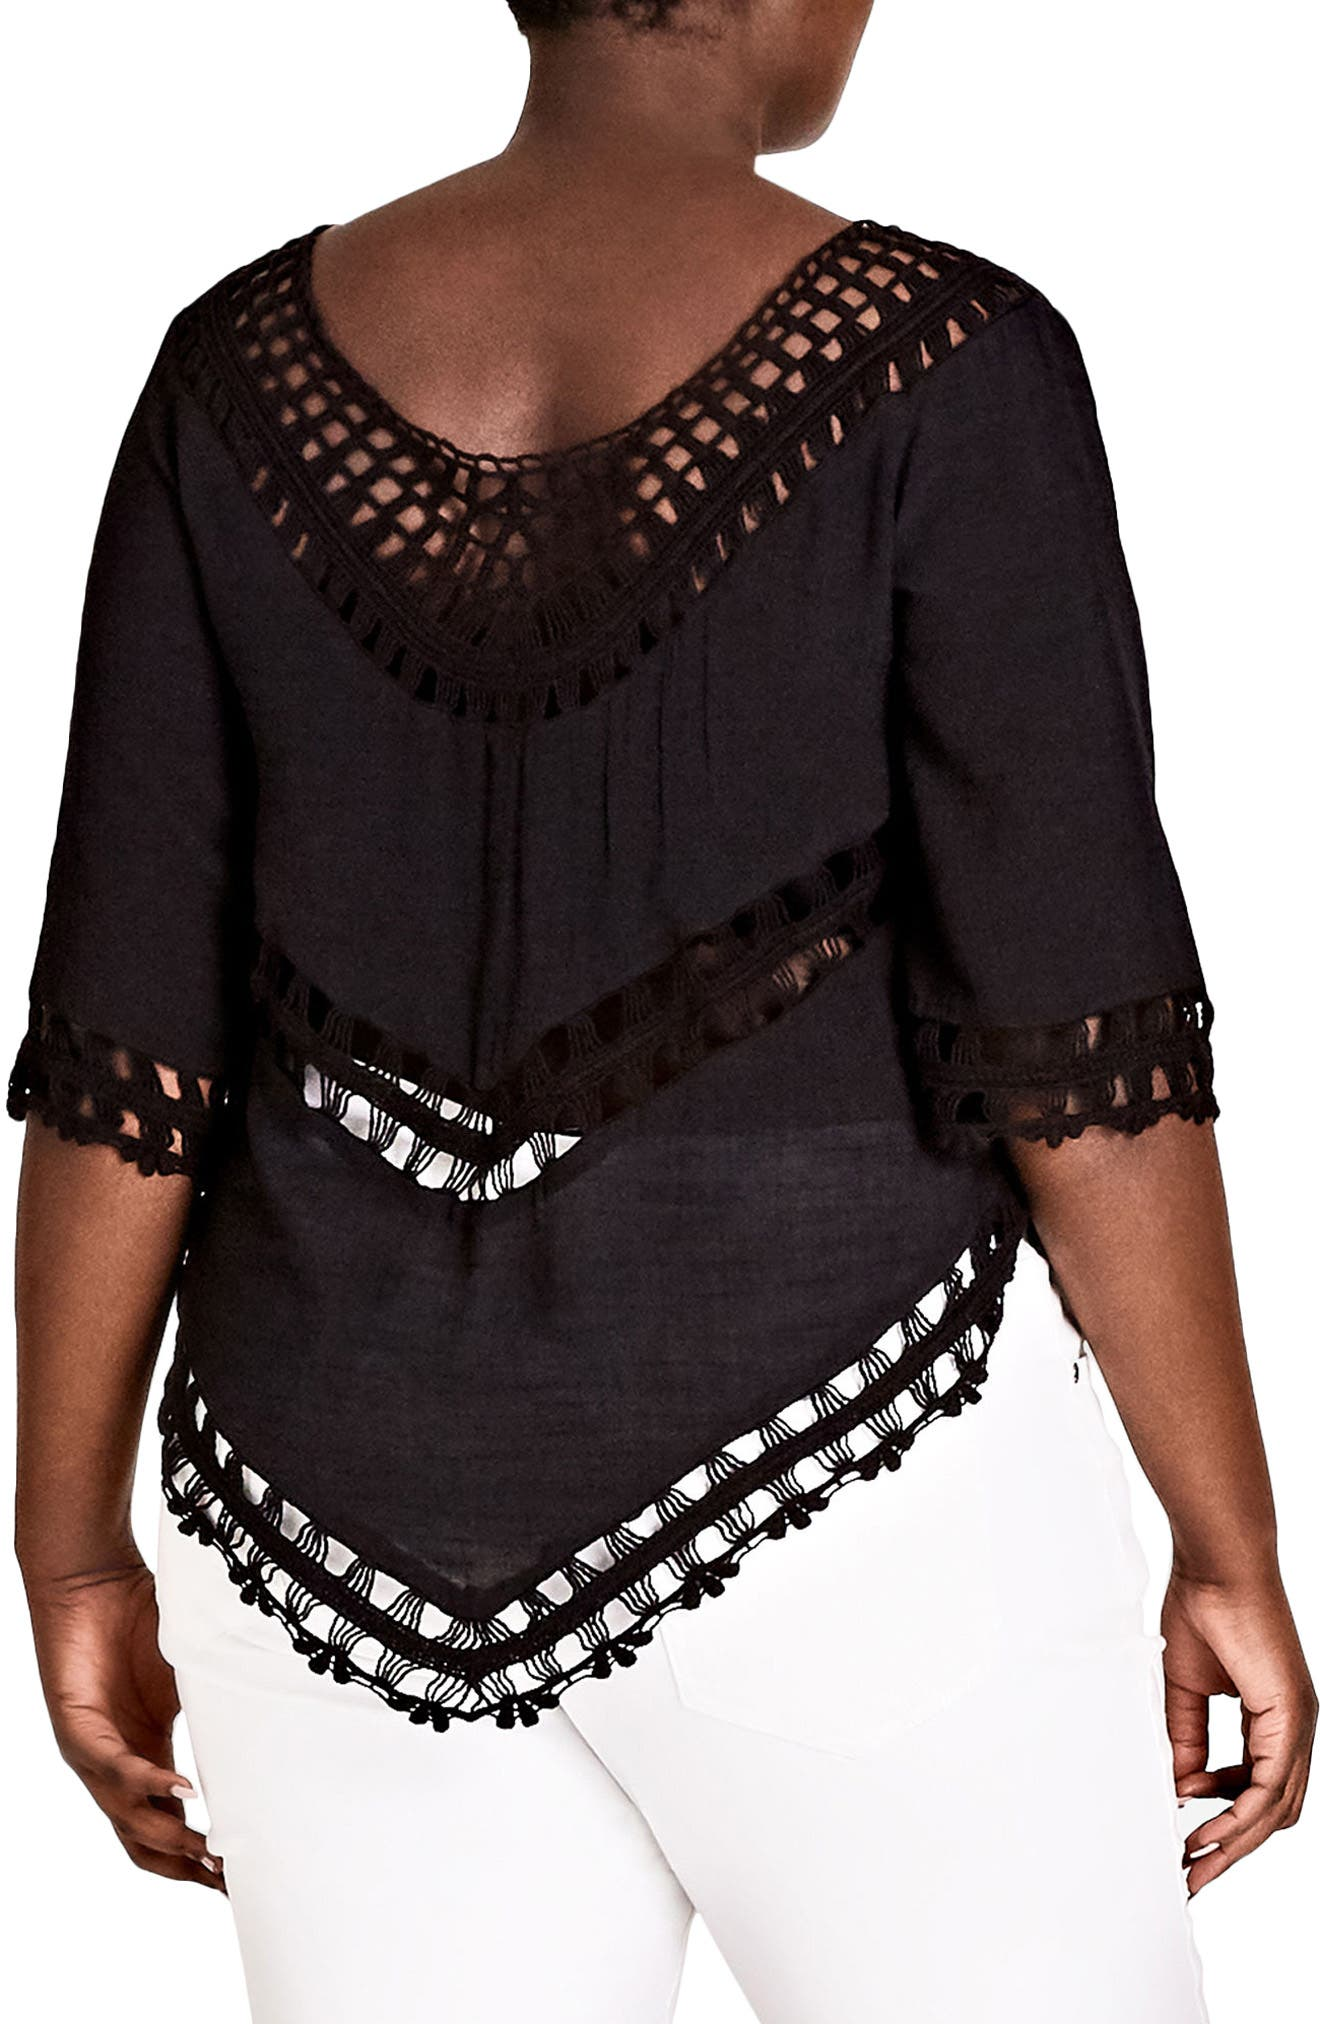 Sweet Vibe Crochet Top,                             Alternate thumbnail 2, color,                             BLACK